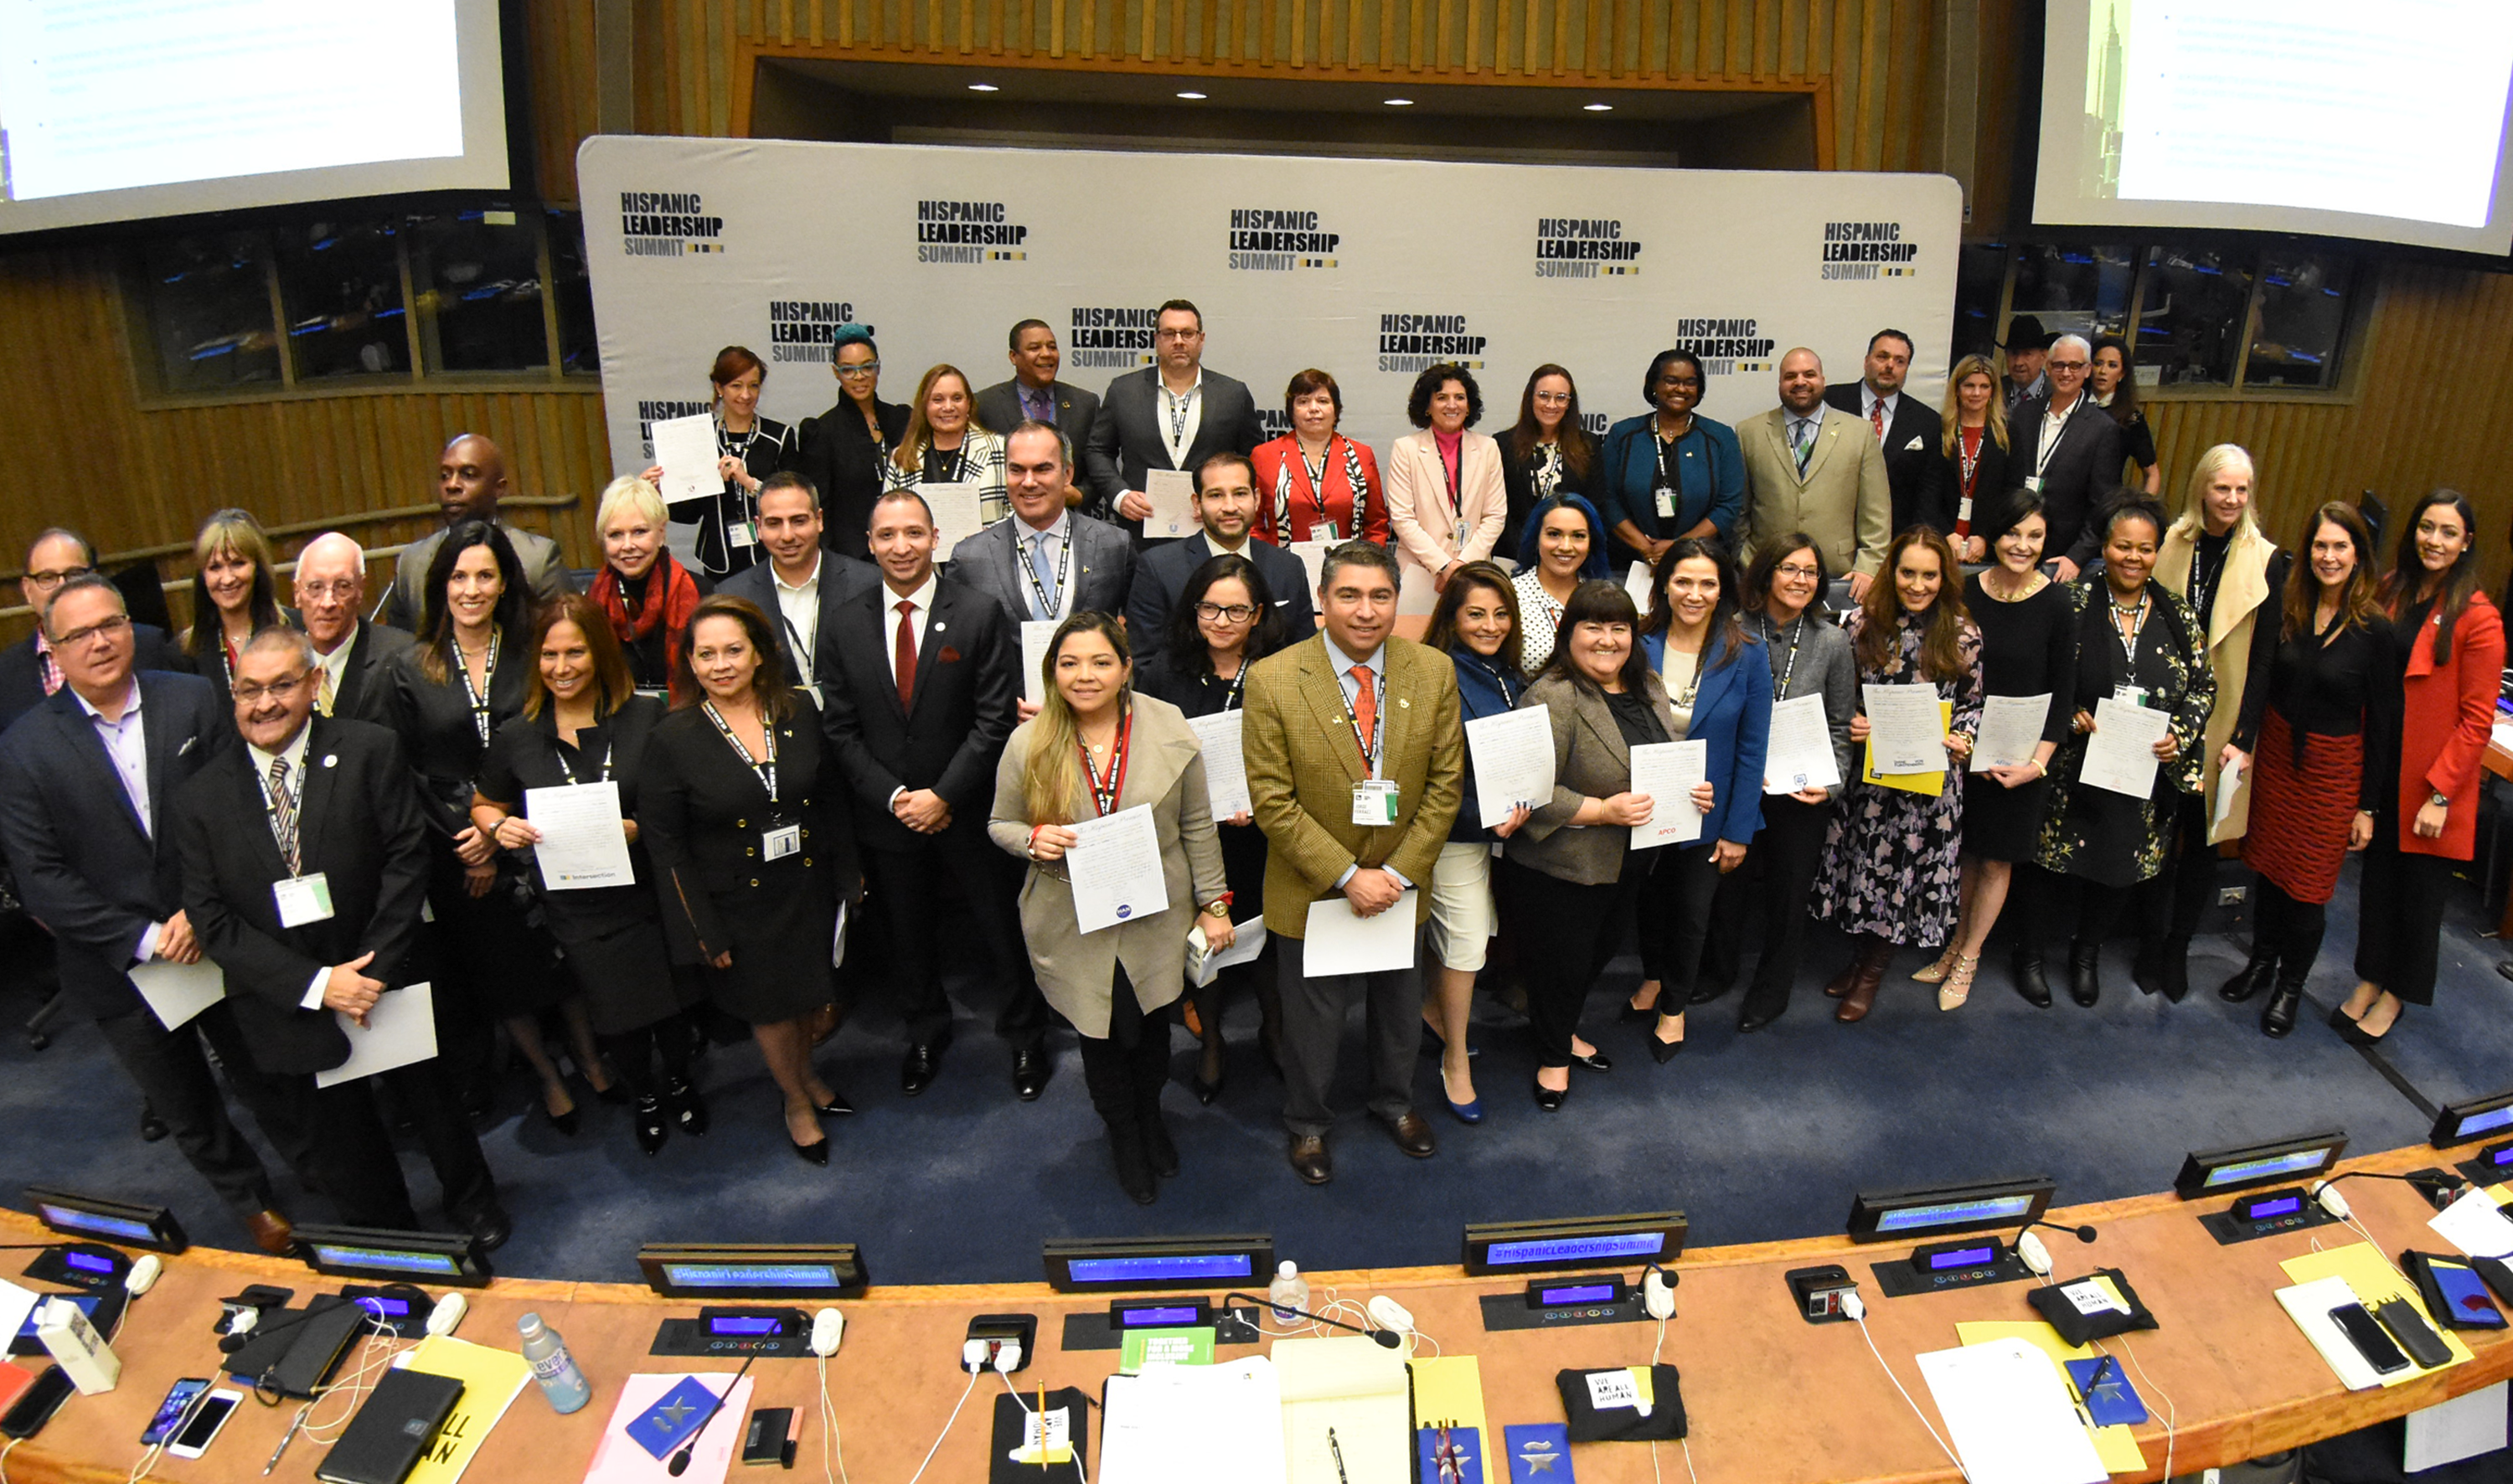 Hispanic Community leaders signed the hispanic promise in the United Nations